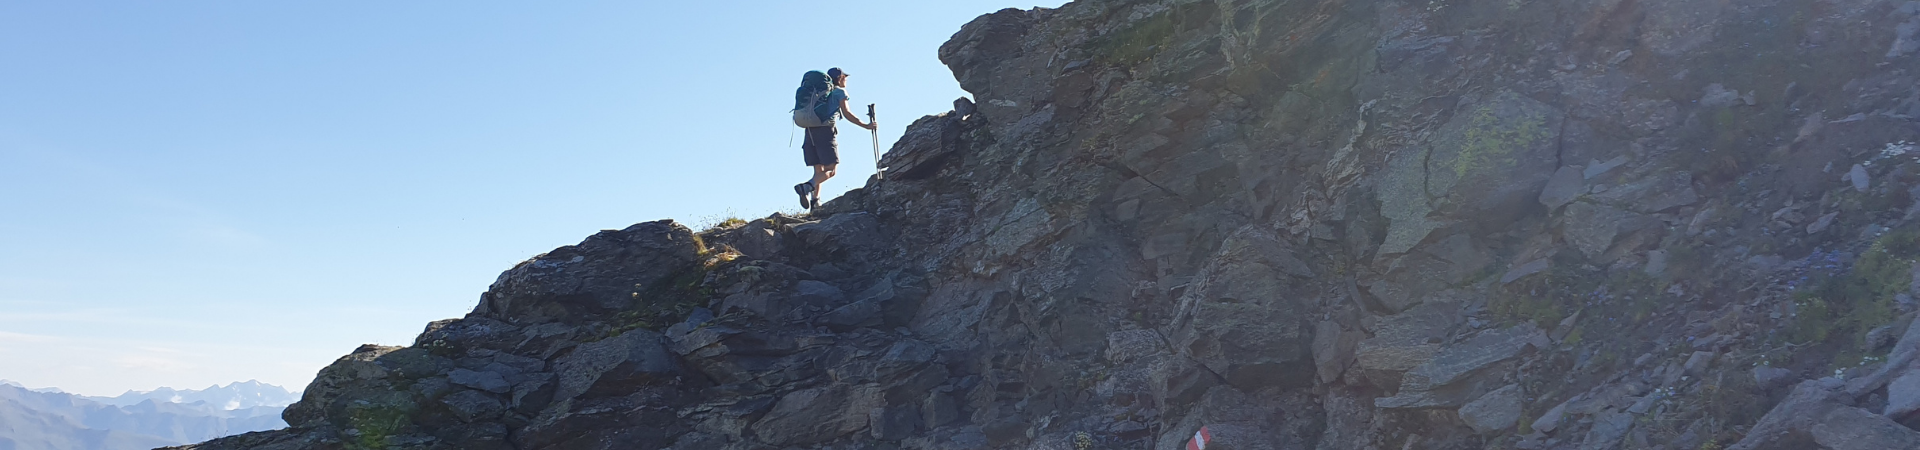 201911366v02 - Climb your mountain email series 2